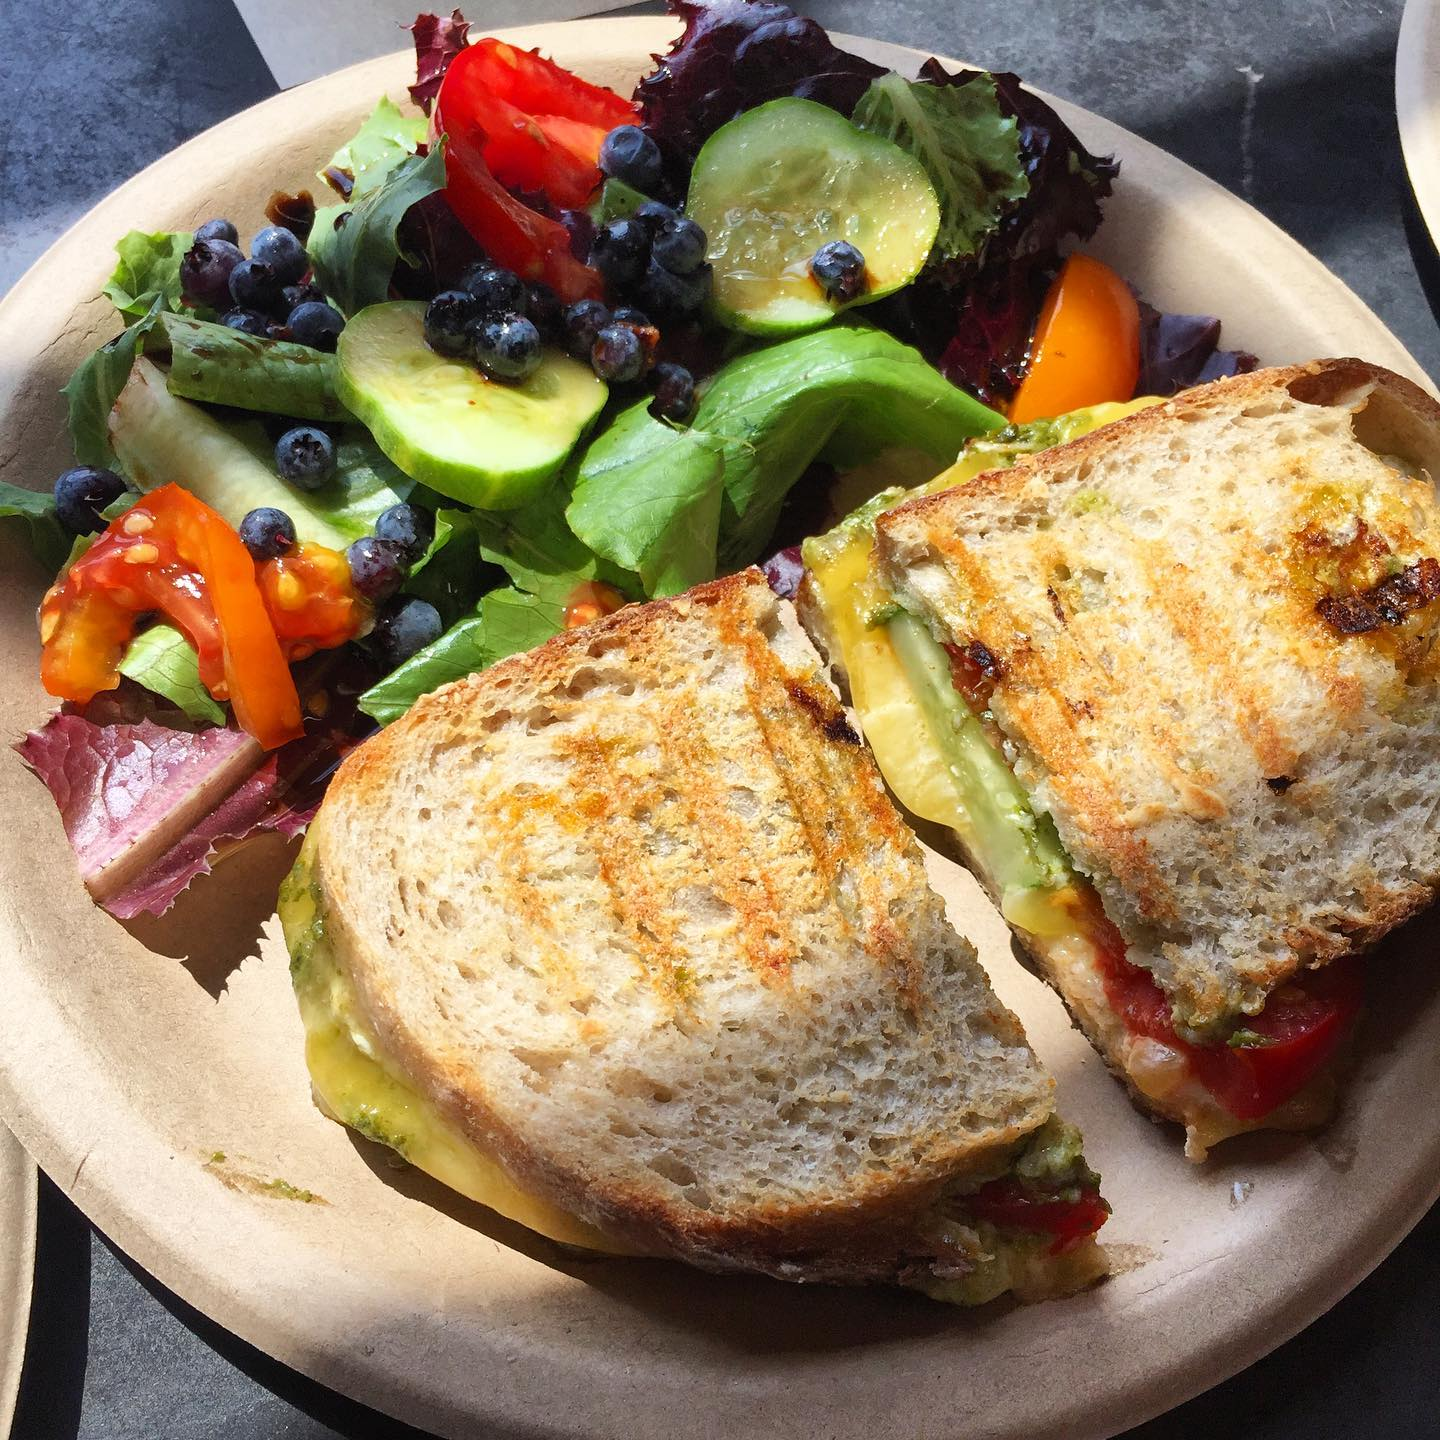 This is our grilled cheese panini made with Back 40 Bakehouse bread and @balfourfarm cheese. Add fresh veggies for no added charge!